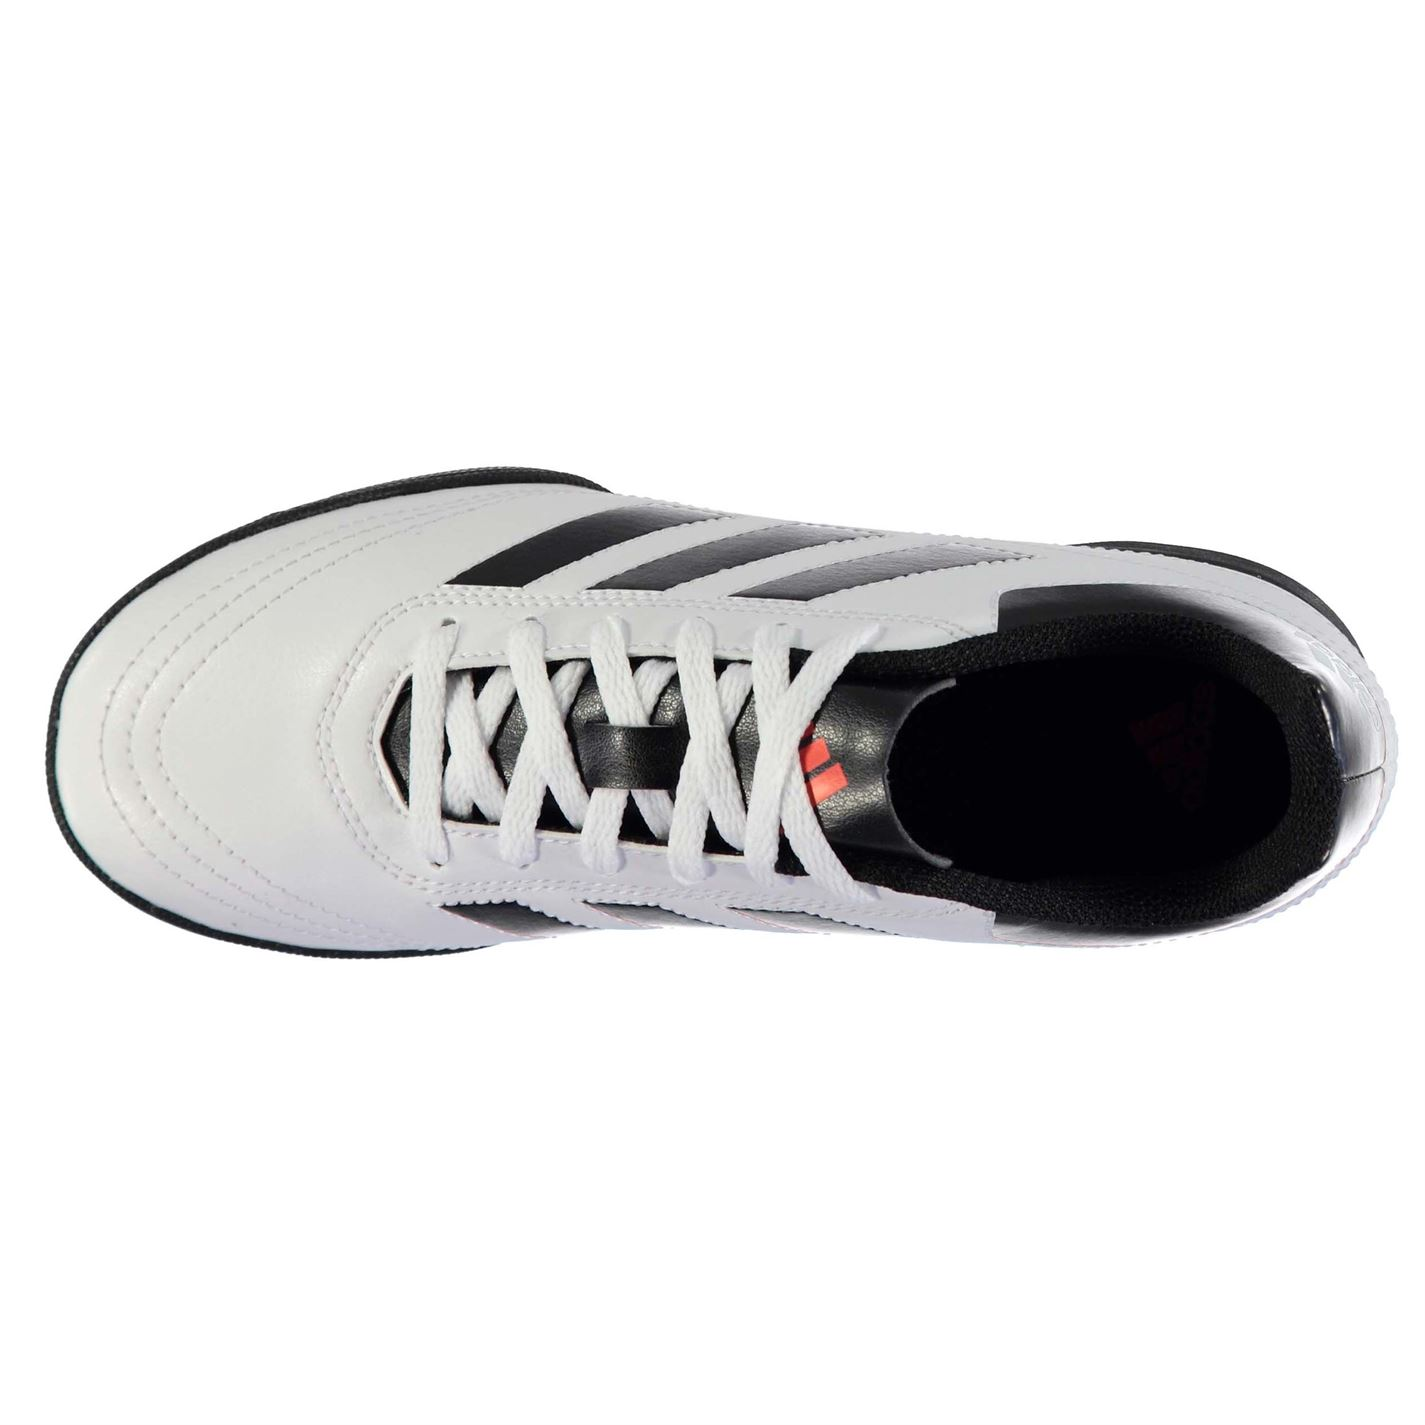 cf70451e32dc adidas Kids Goletto Astro Turf Trainers Junior Boys Lace Up Shoes ...